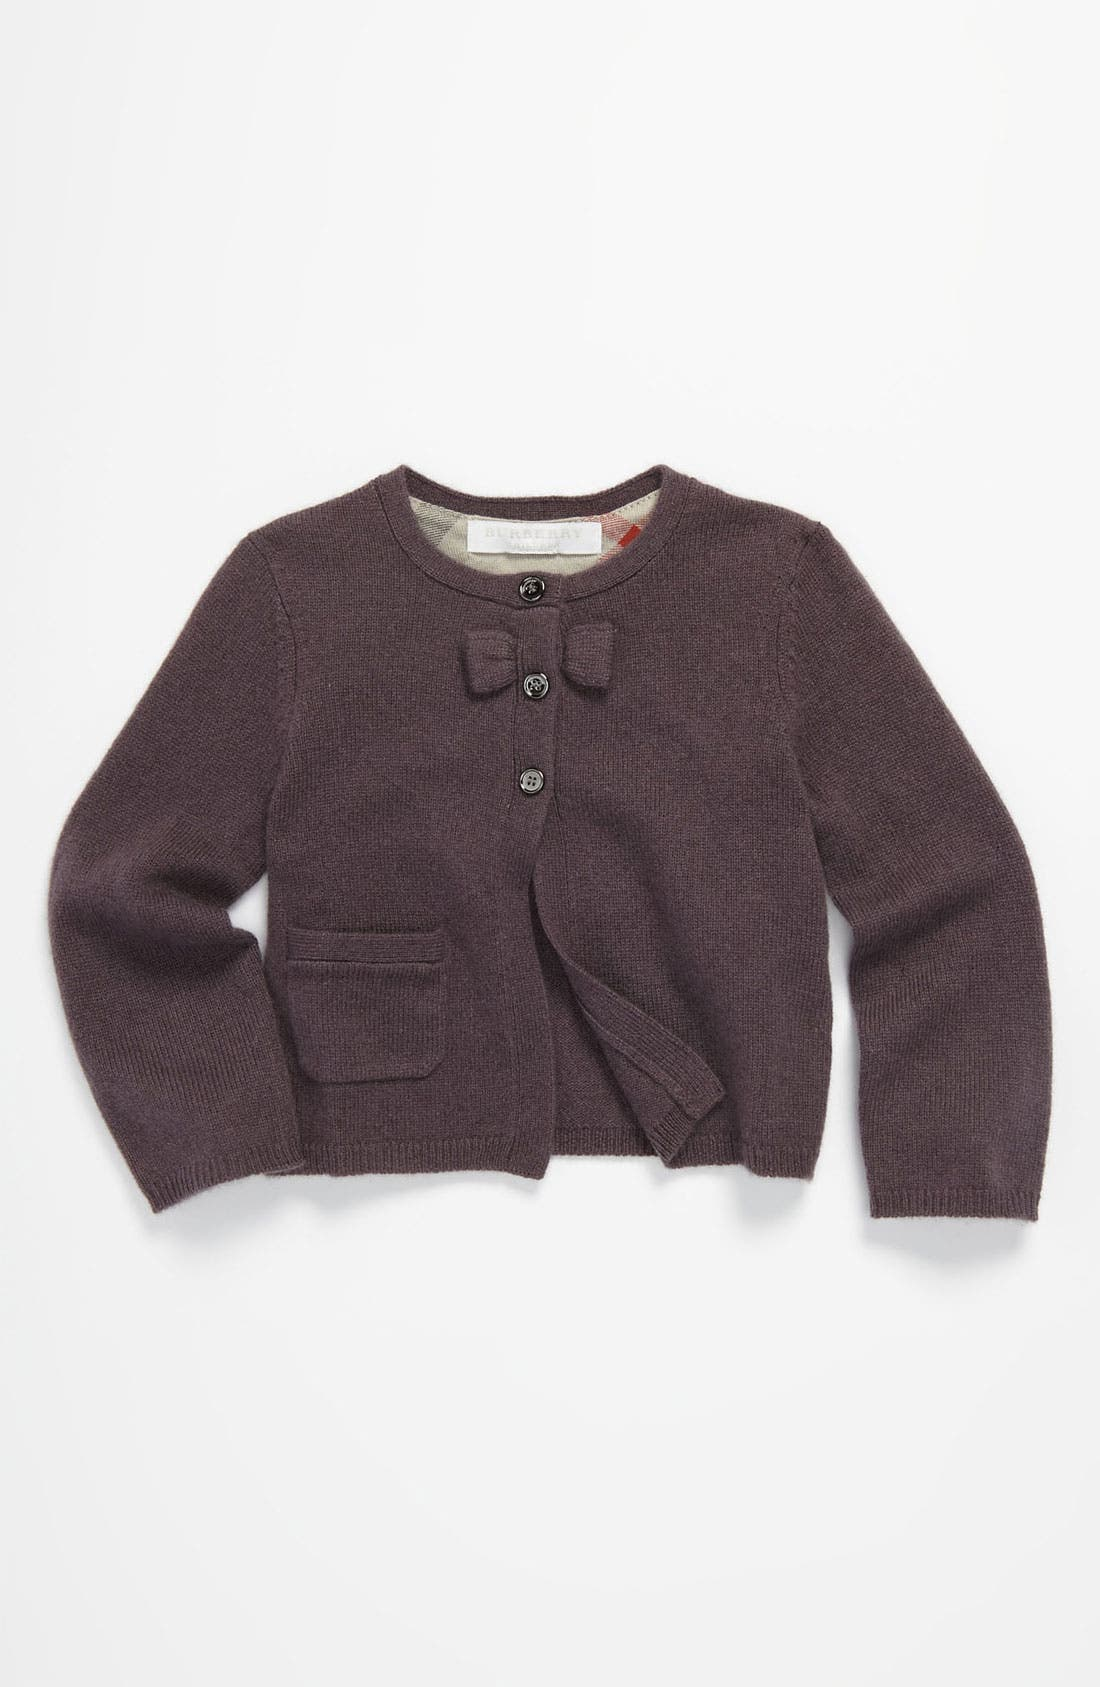 Alternate Image 1 Selected - Burberry Bow Trimmed Cashmere Cardigan (Infant)